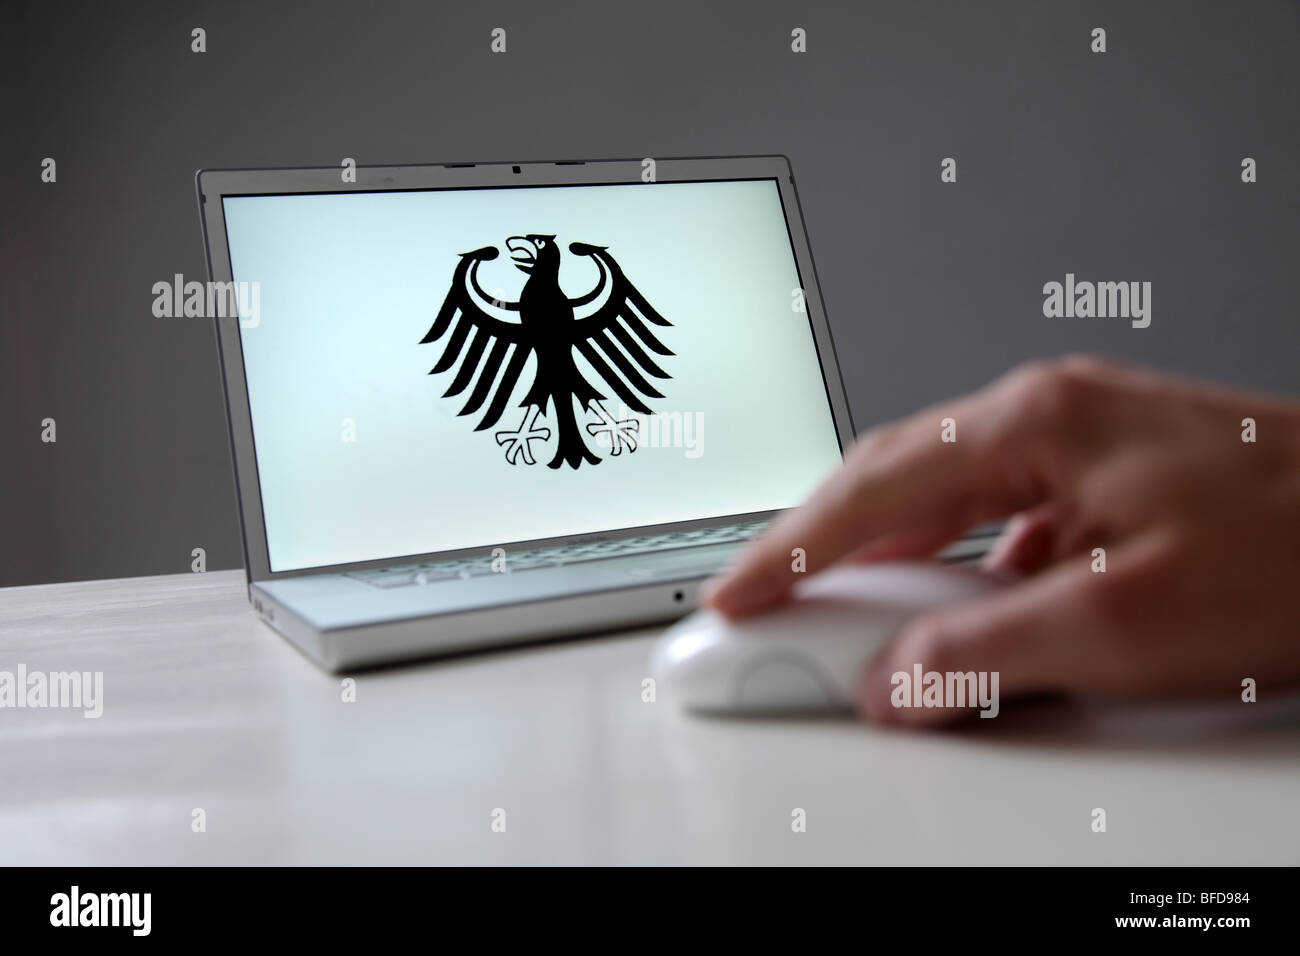 Federal eagle on computer screen. Symbol: prevention of online crime by the state - Stock Image